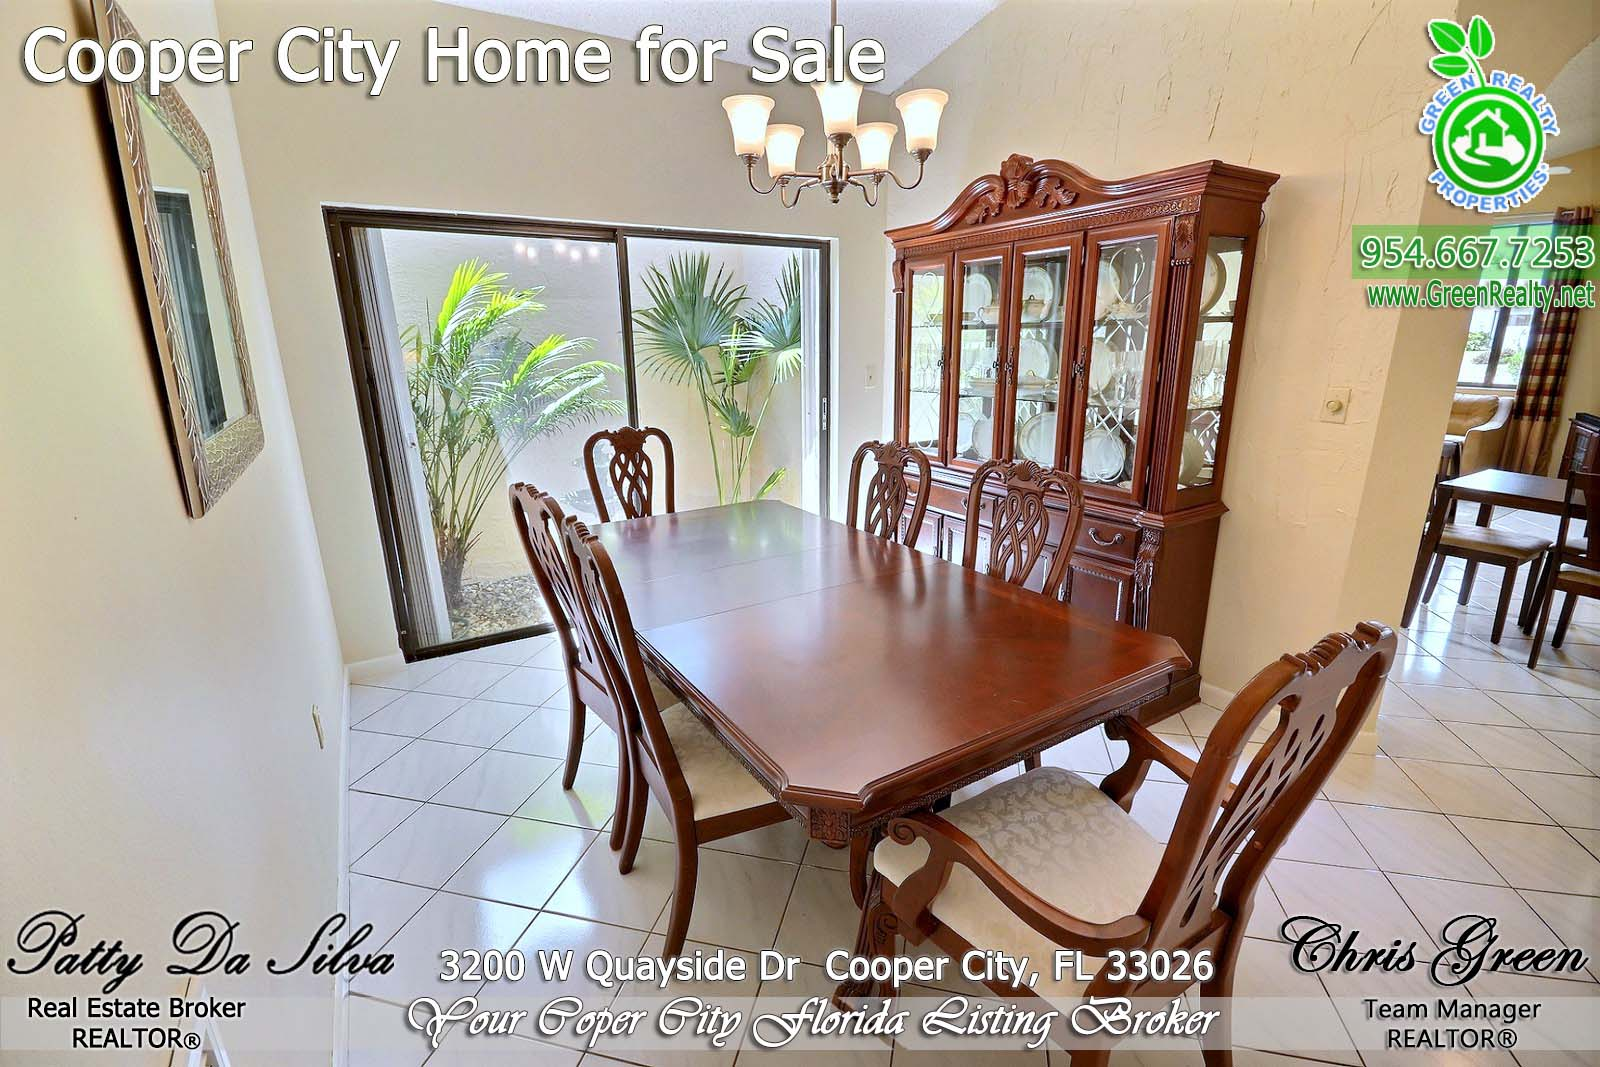 10 Cooper City Homes For Sale in Rock Creek (4)